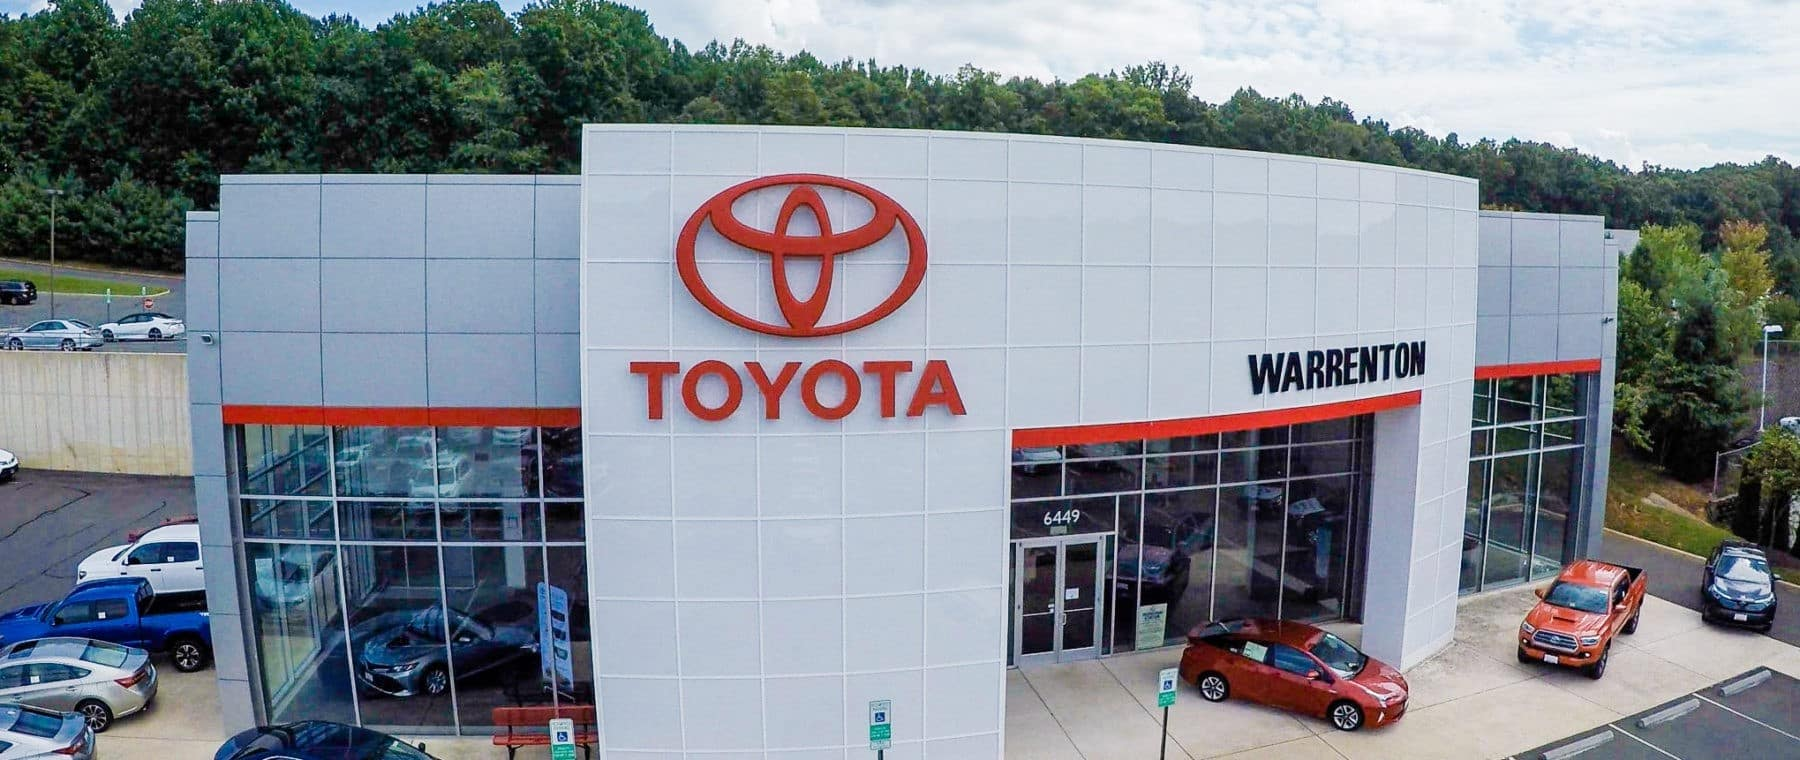 Toyota Specials At Warrenton Toyota In Warrenton Virginia